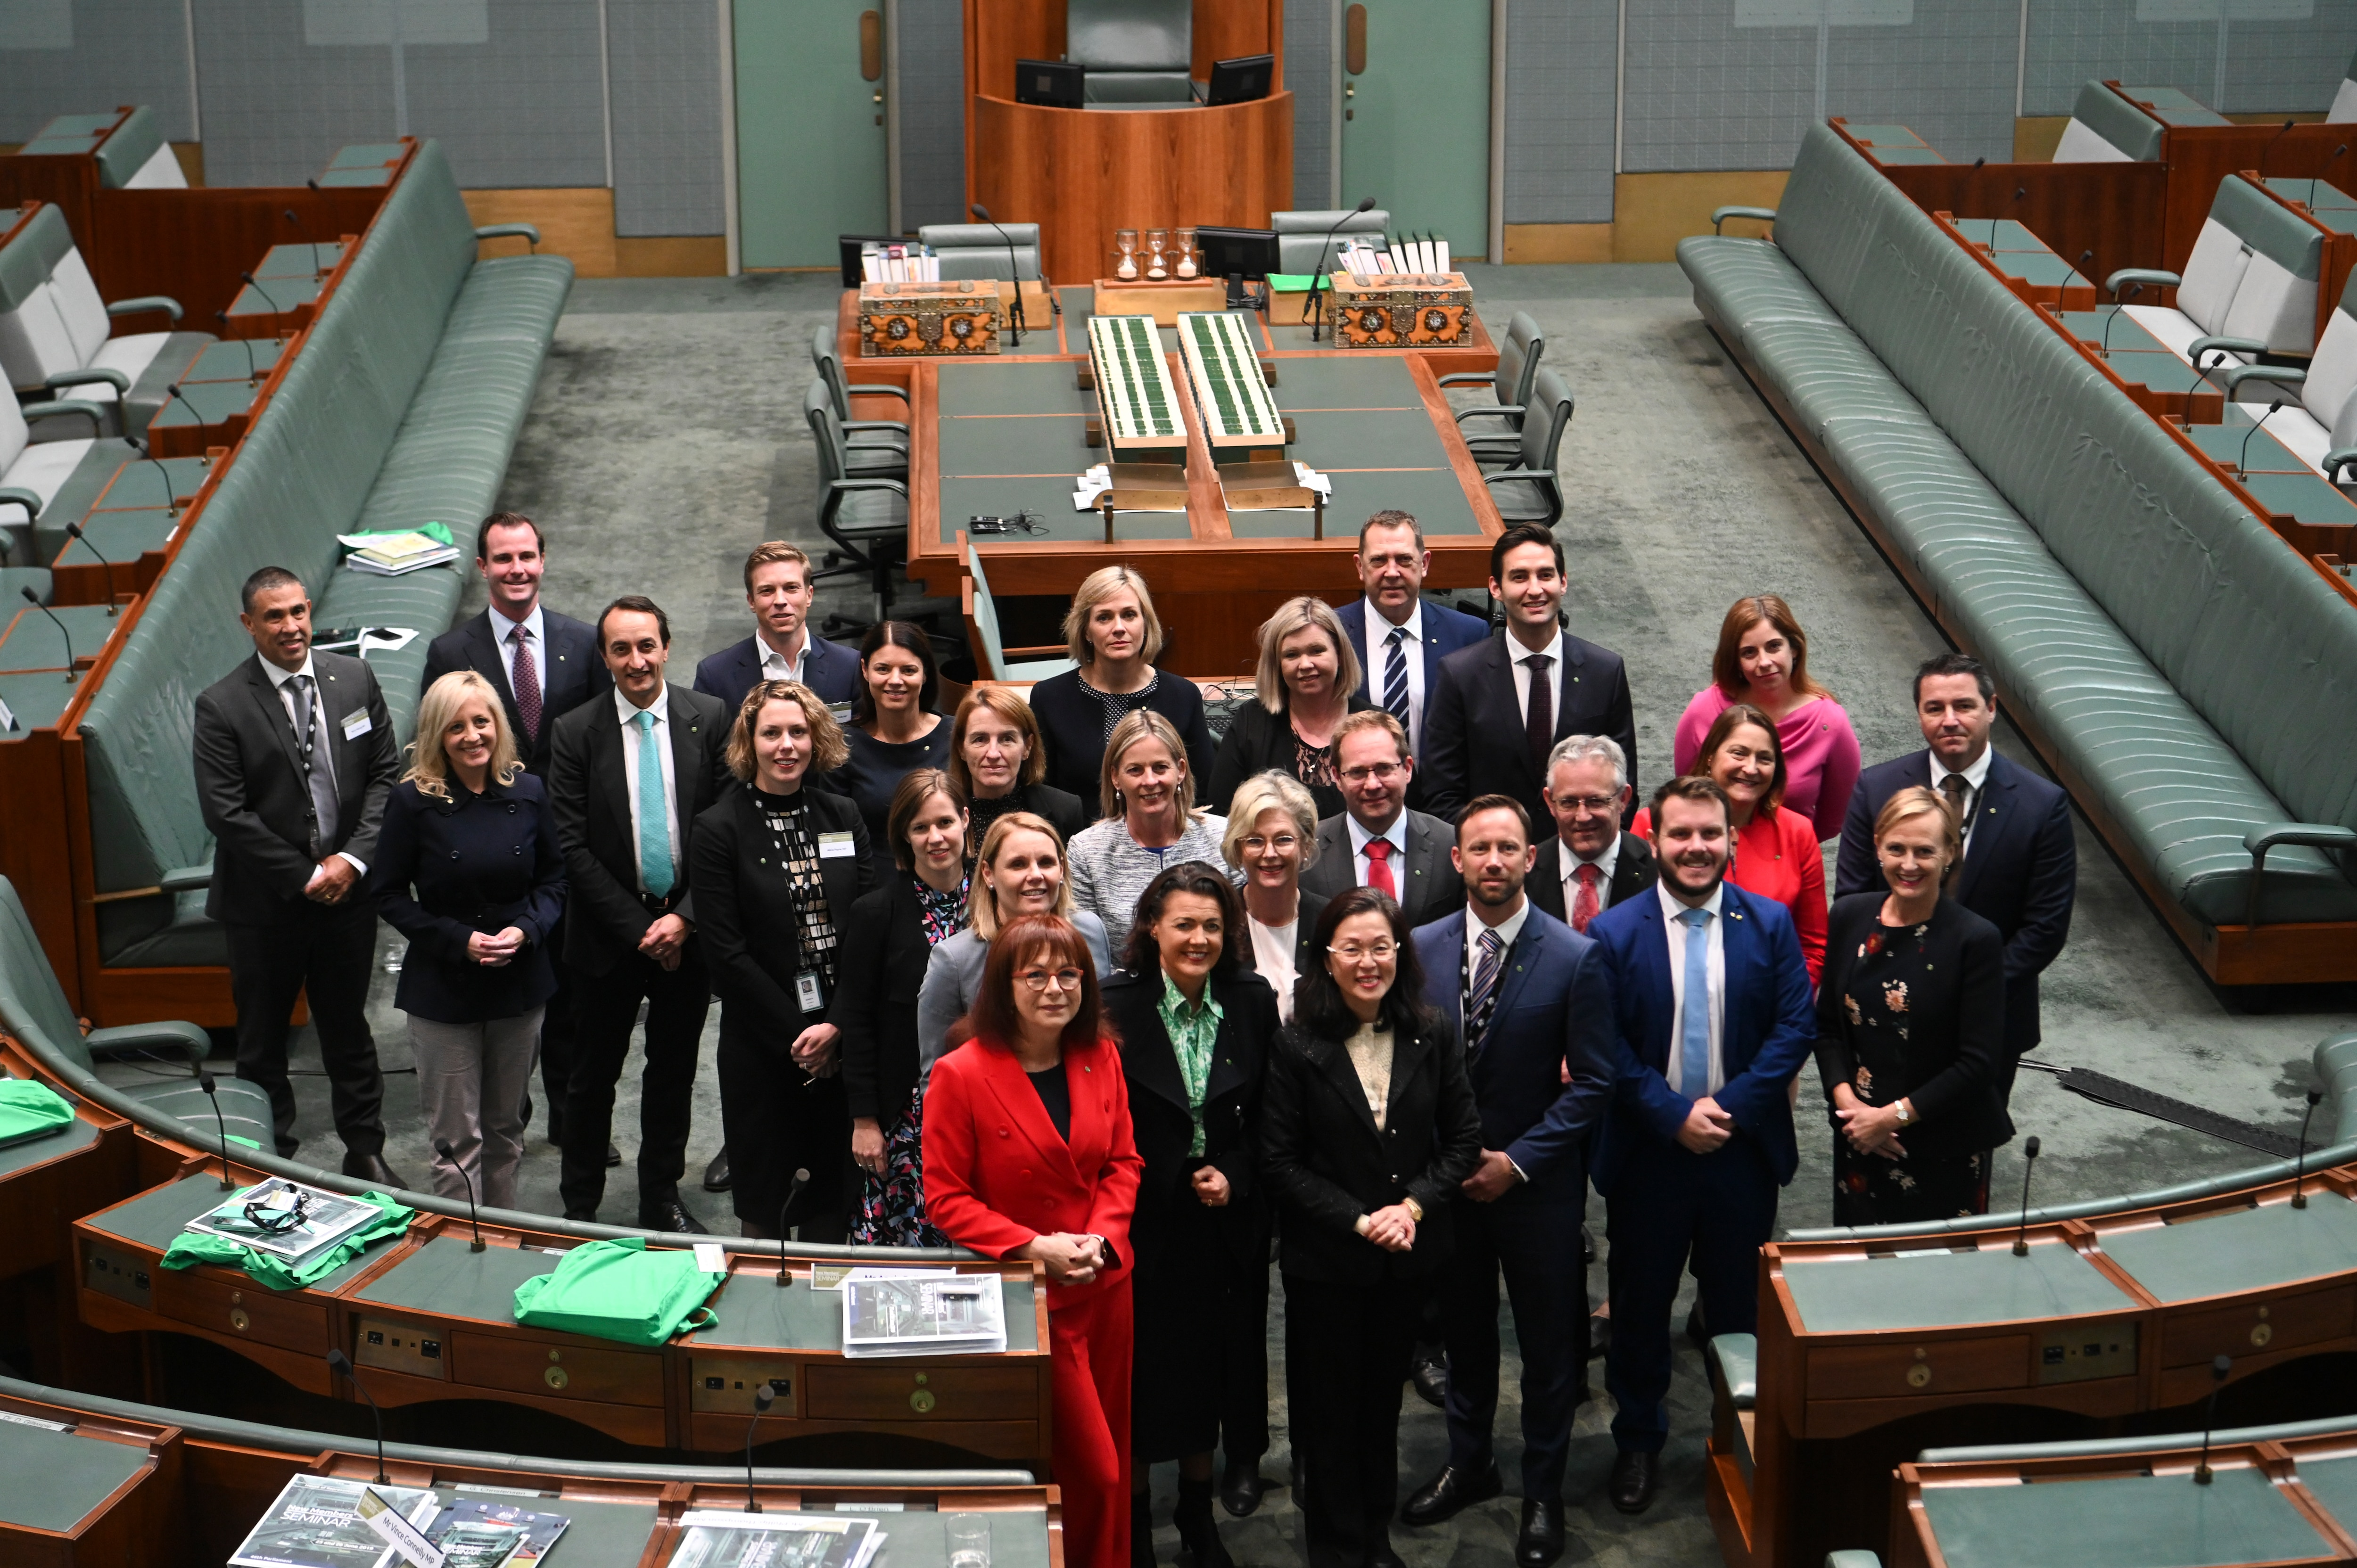 Newly elected MPs pose for photographs during a new Members' Seminar in the House of Representatives at Parliament House